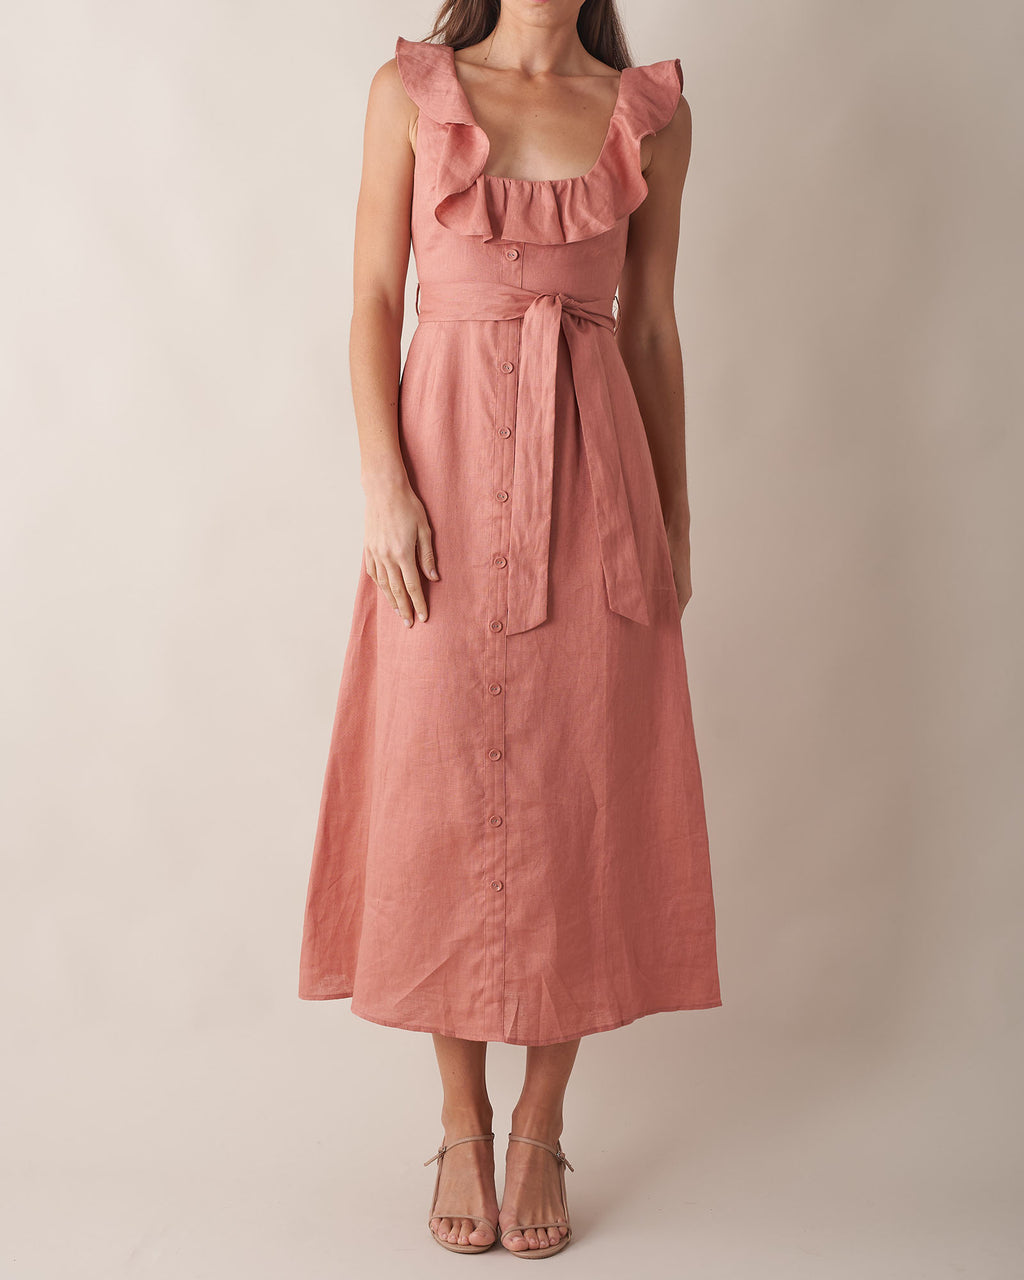 Bohdi Linen Dress